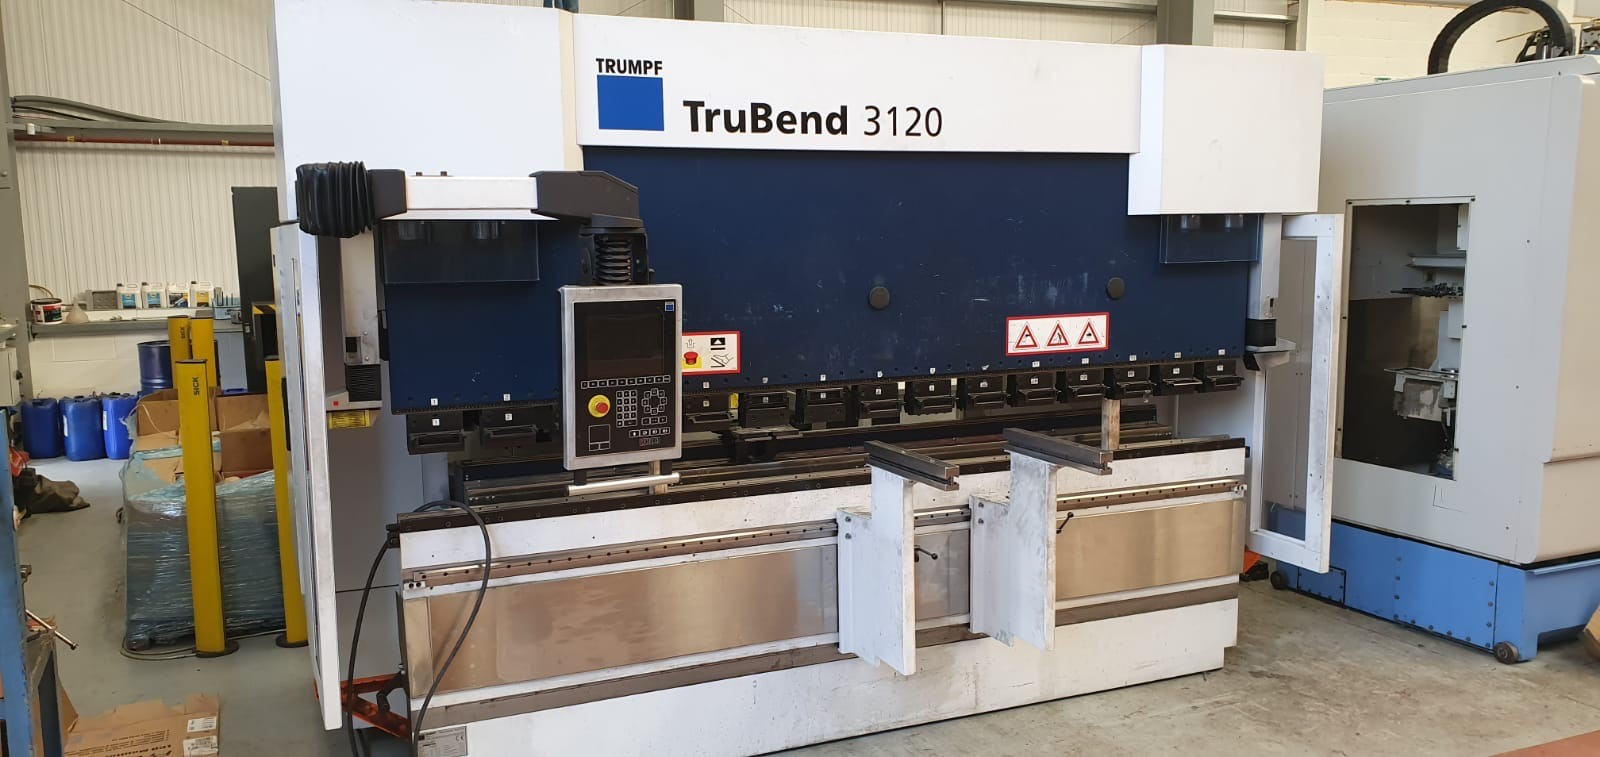 TRUMPF Trubend 3120 Multi axis CNC Press brake